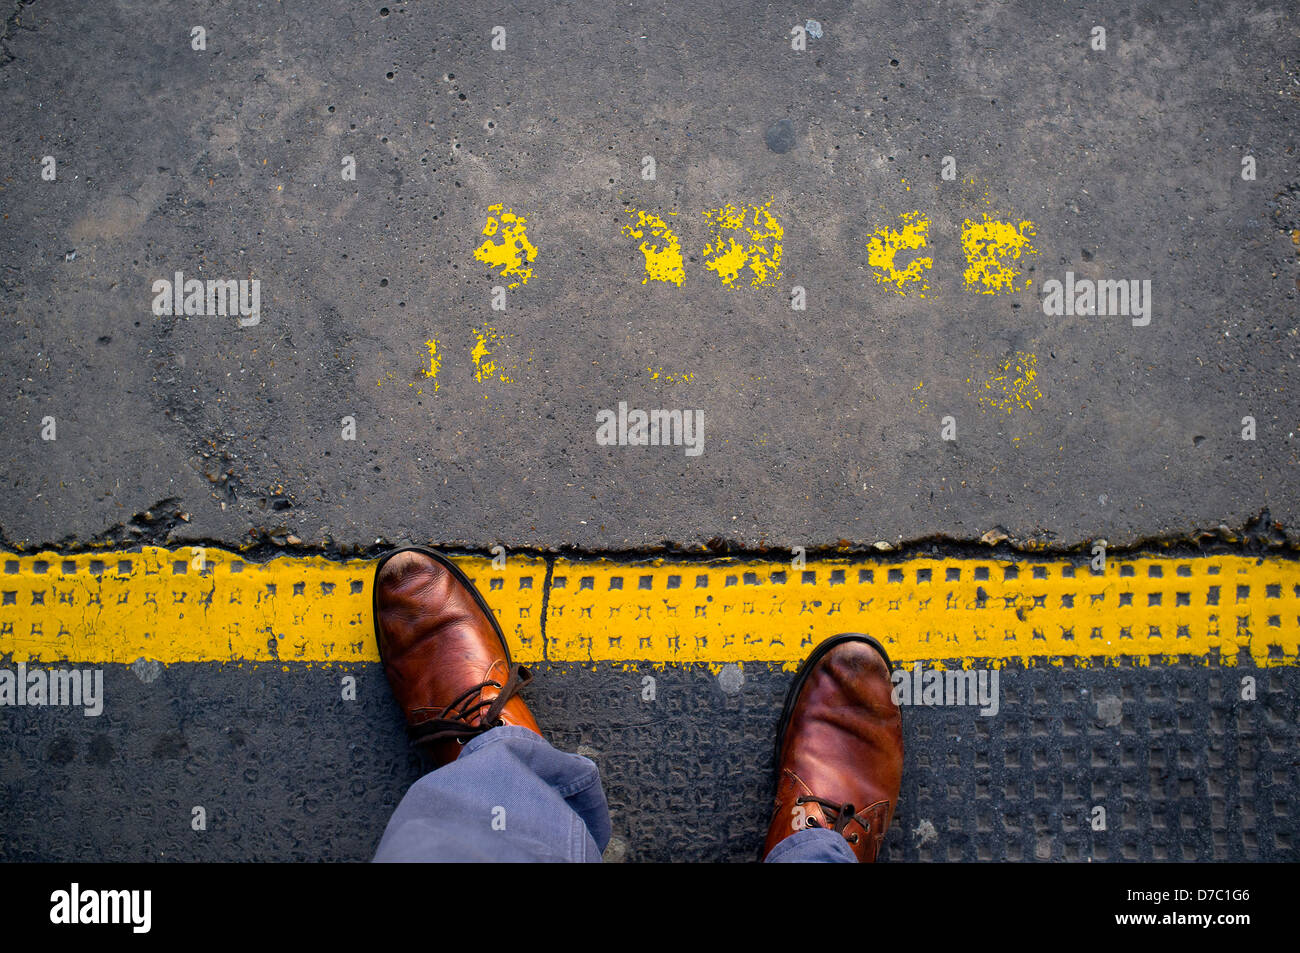 Man standing on train platform yellow safety line - Stock Image